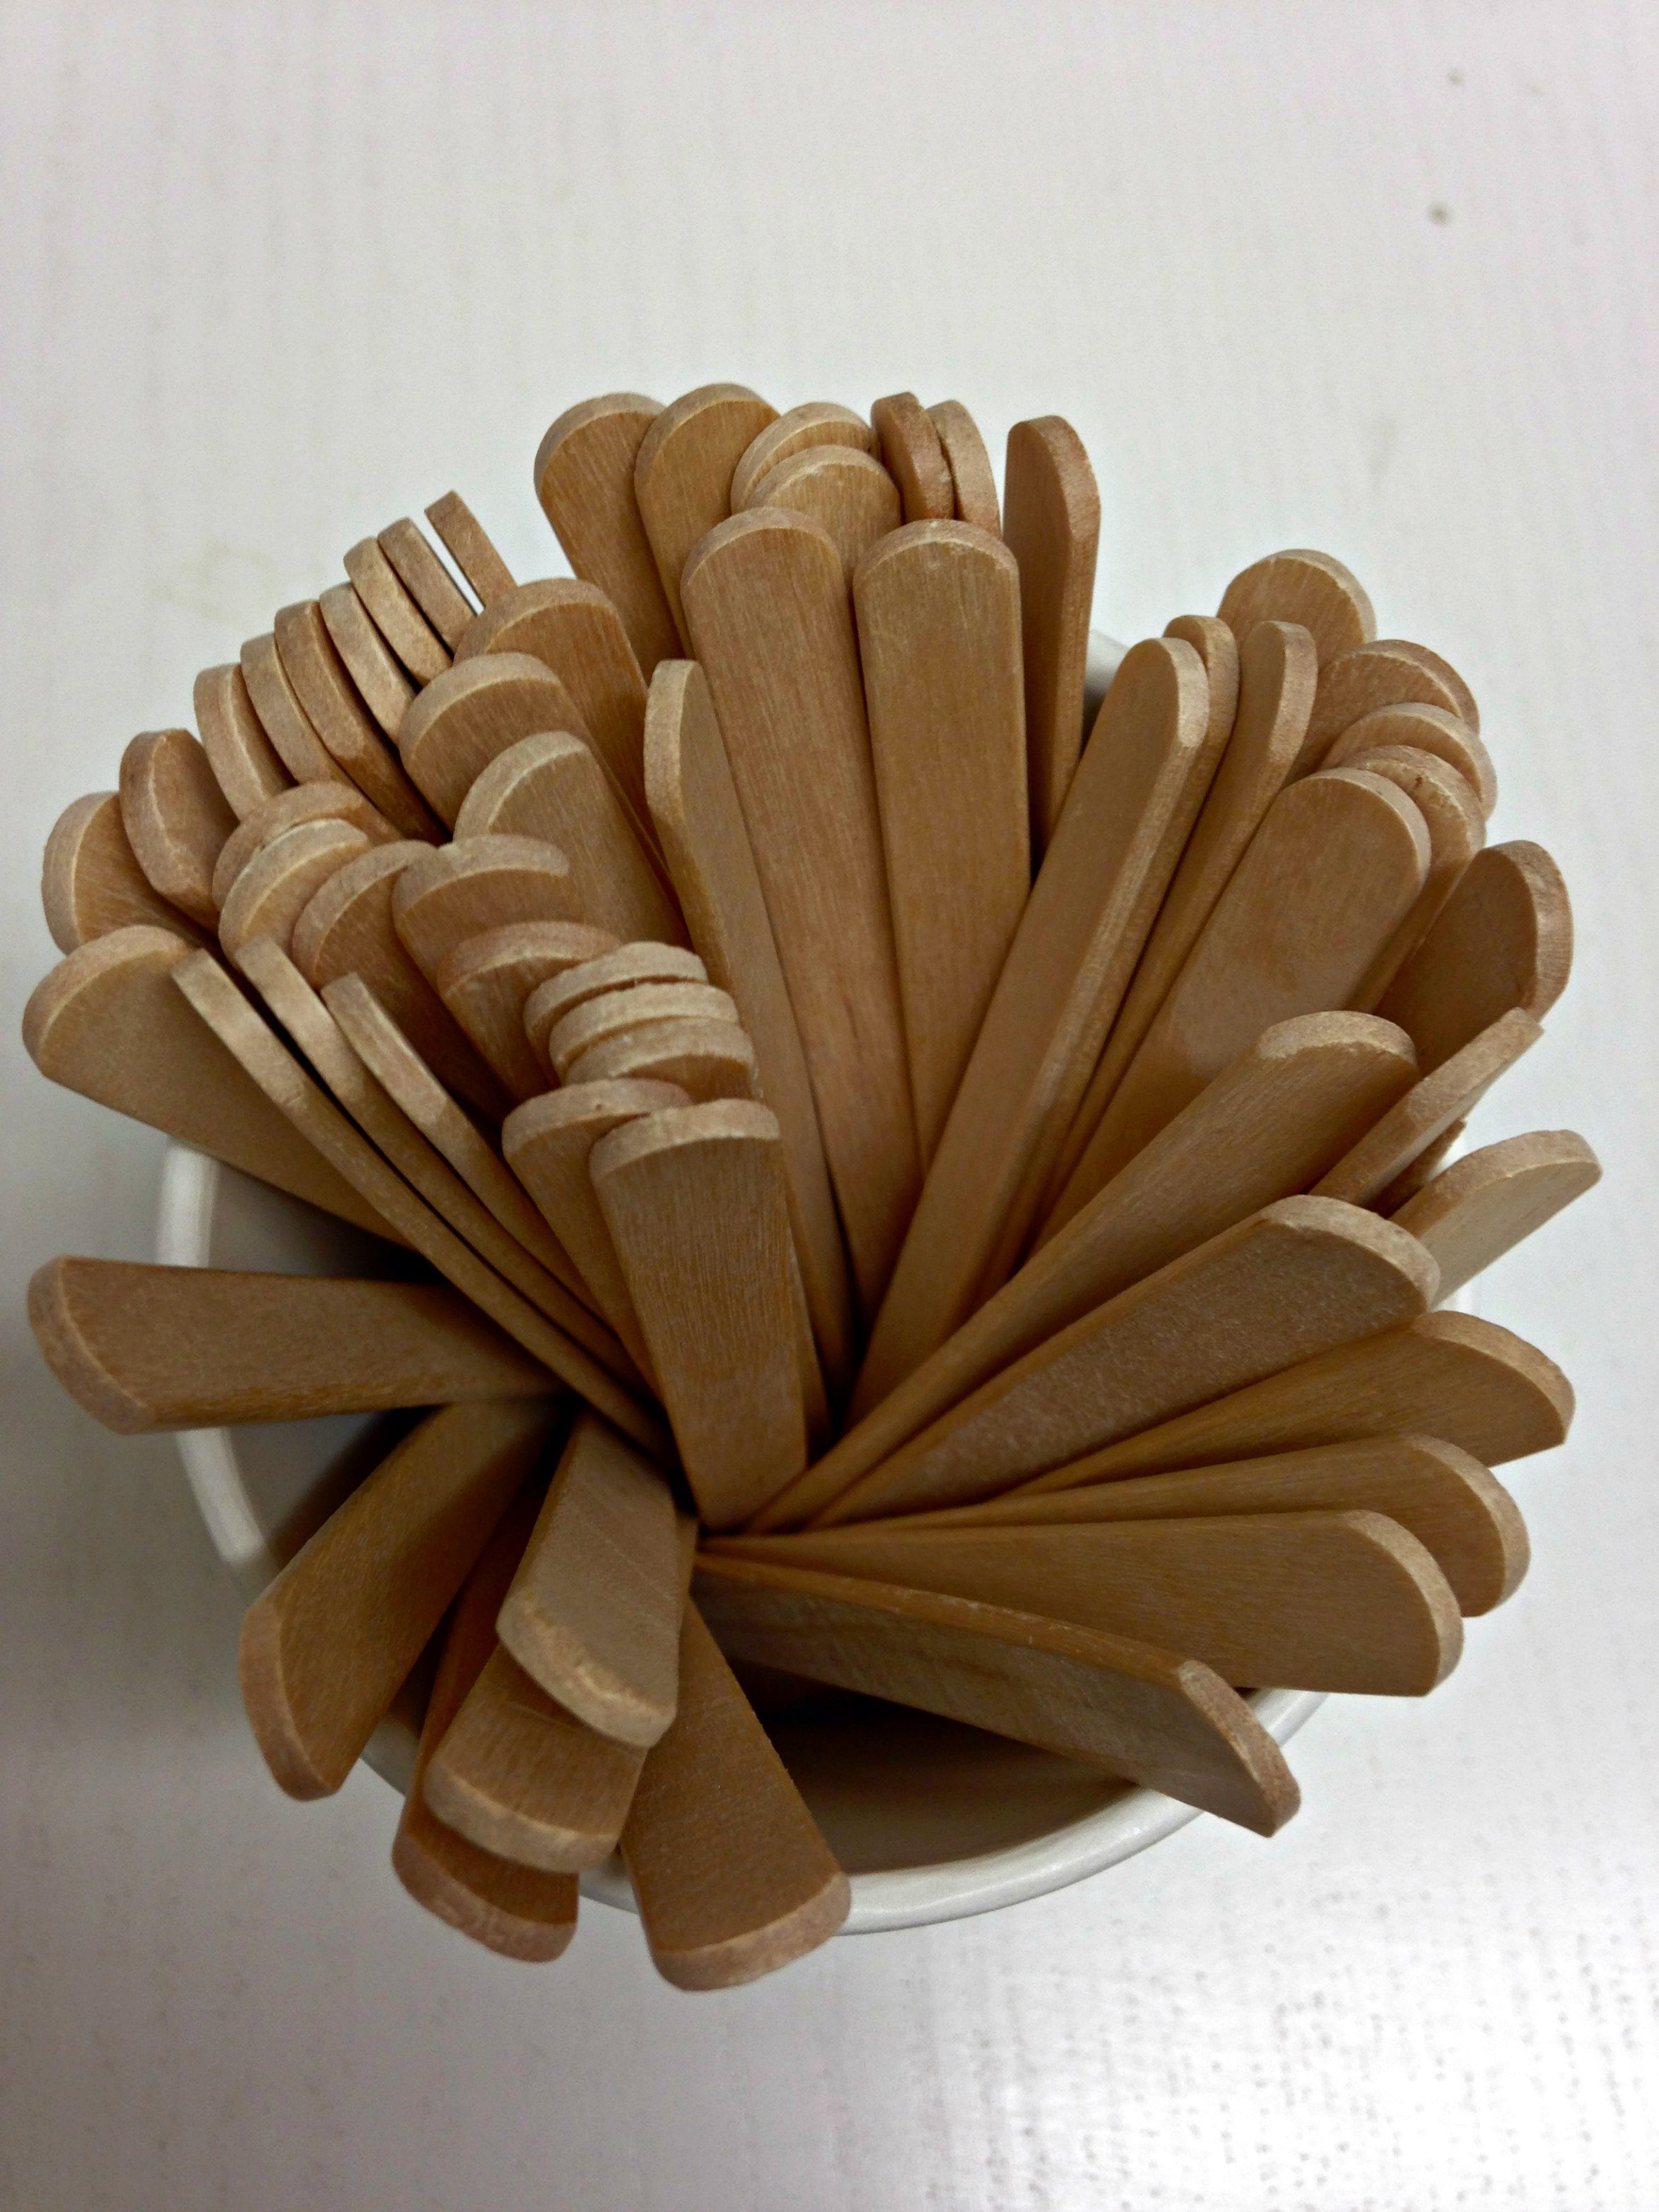 Wooden Stirrers, 1000 per pack